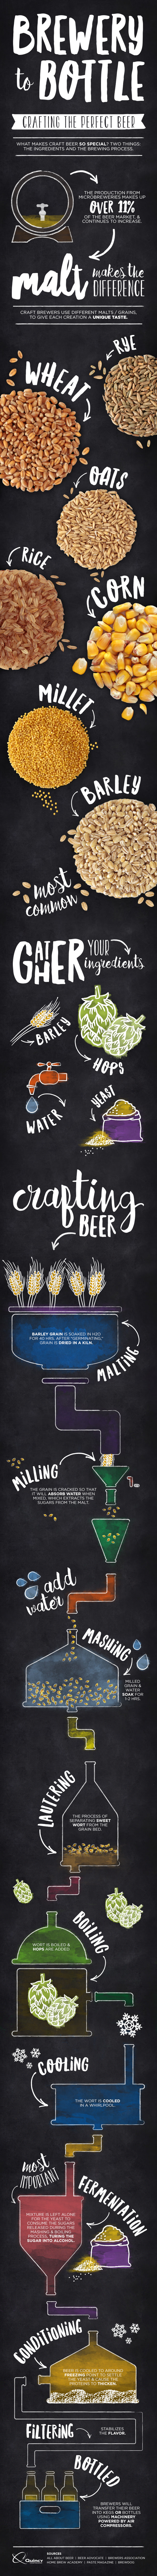 From Brewery to Bottle: How to Make Craft Beer